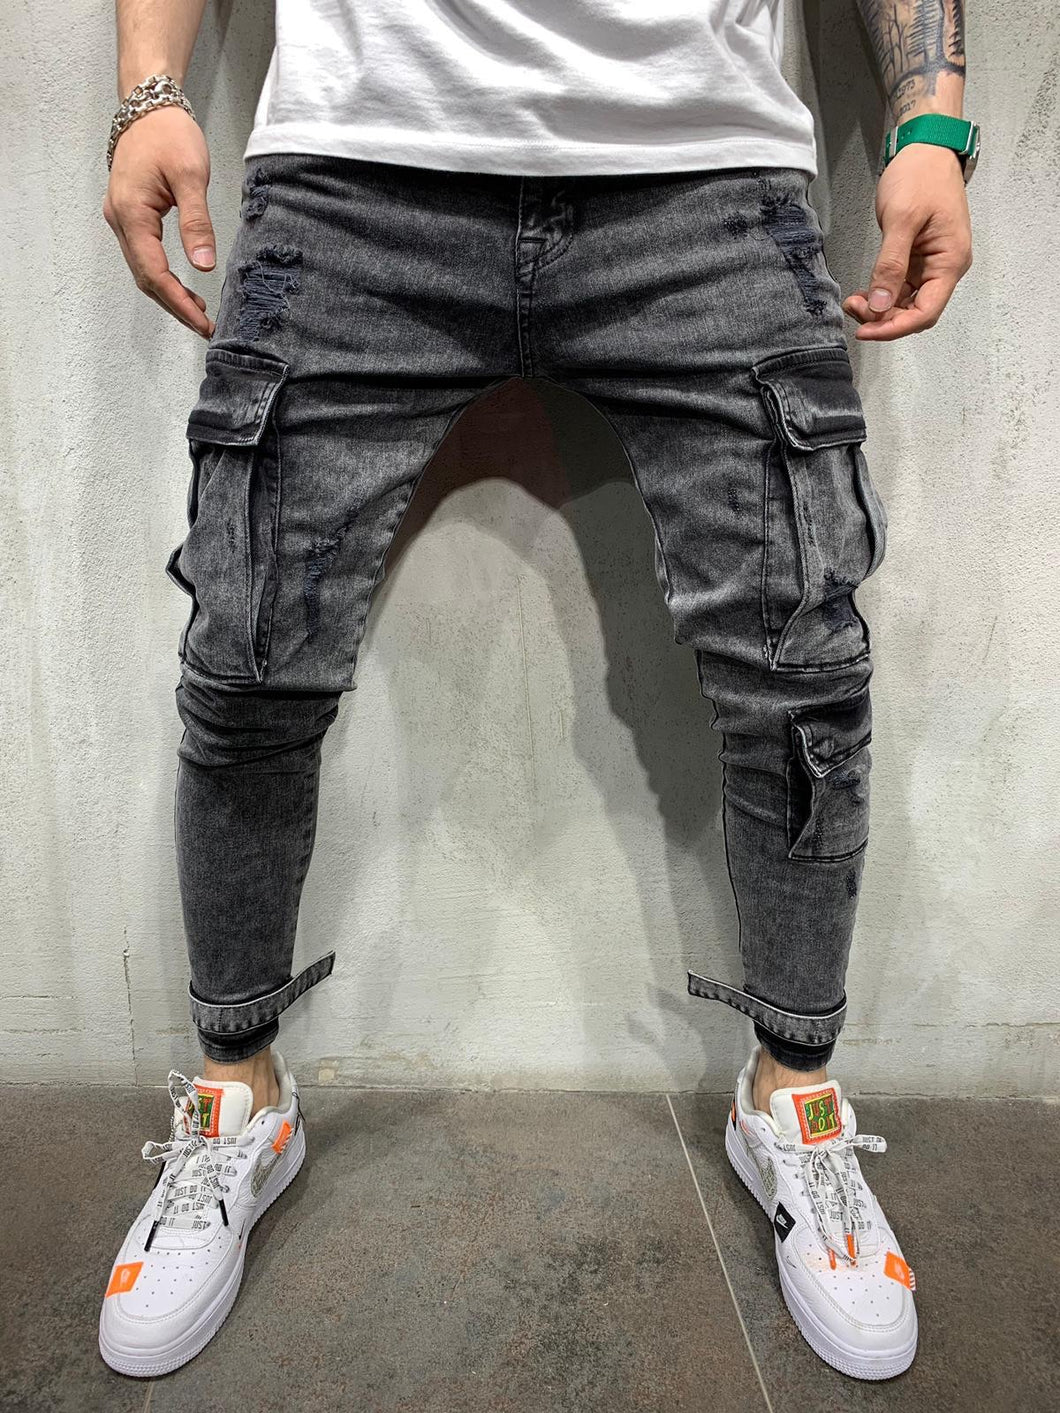 Ankle Strap Cargo Pocket Washed Black Jeans Slim Fit Mens Jeans AY502 Streetwear Mens Jeans